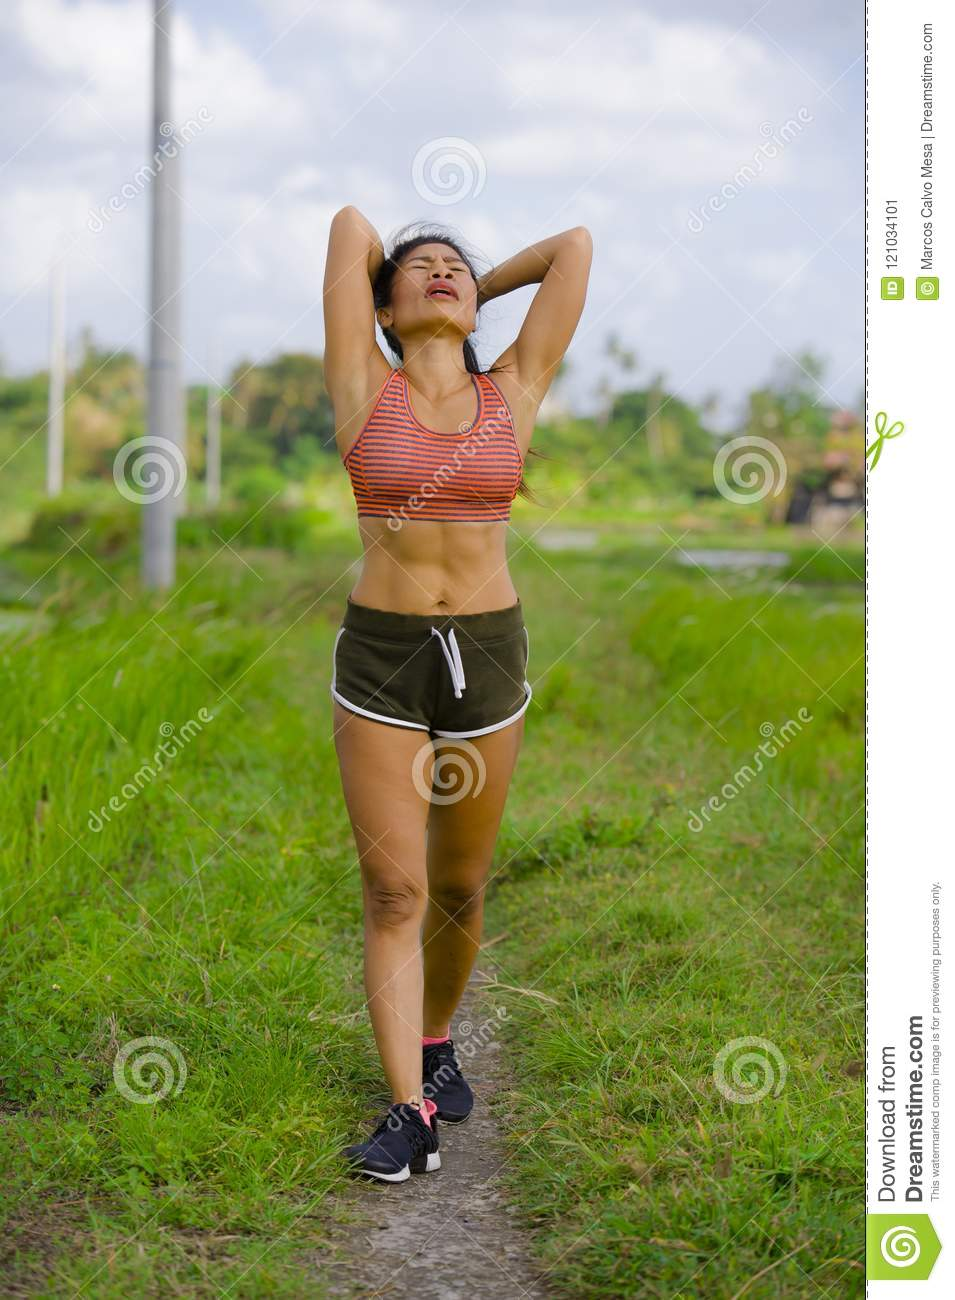 Tired and exhausted fit Asian sport woman training running workout at green field landscape background working hard in healthy lif